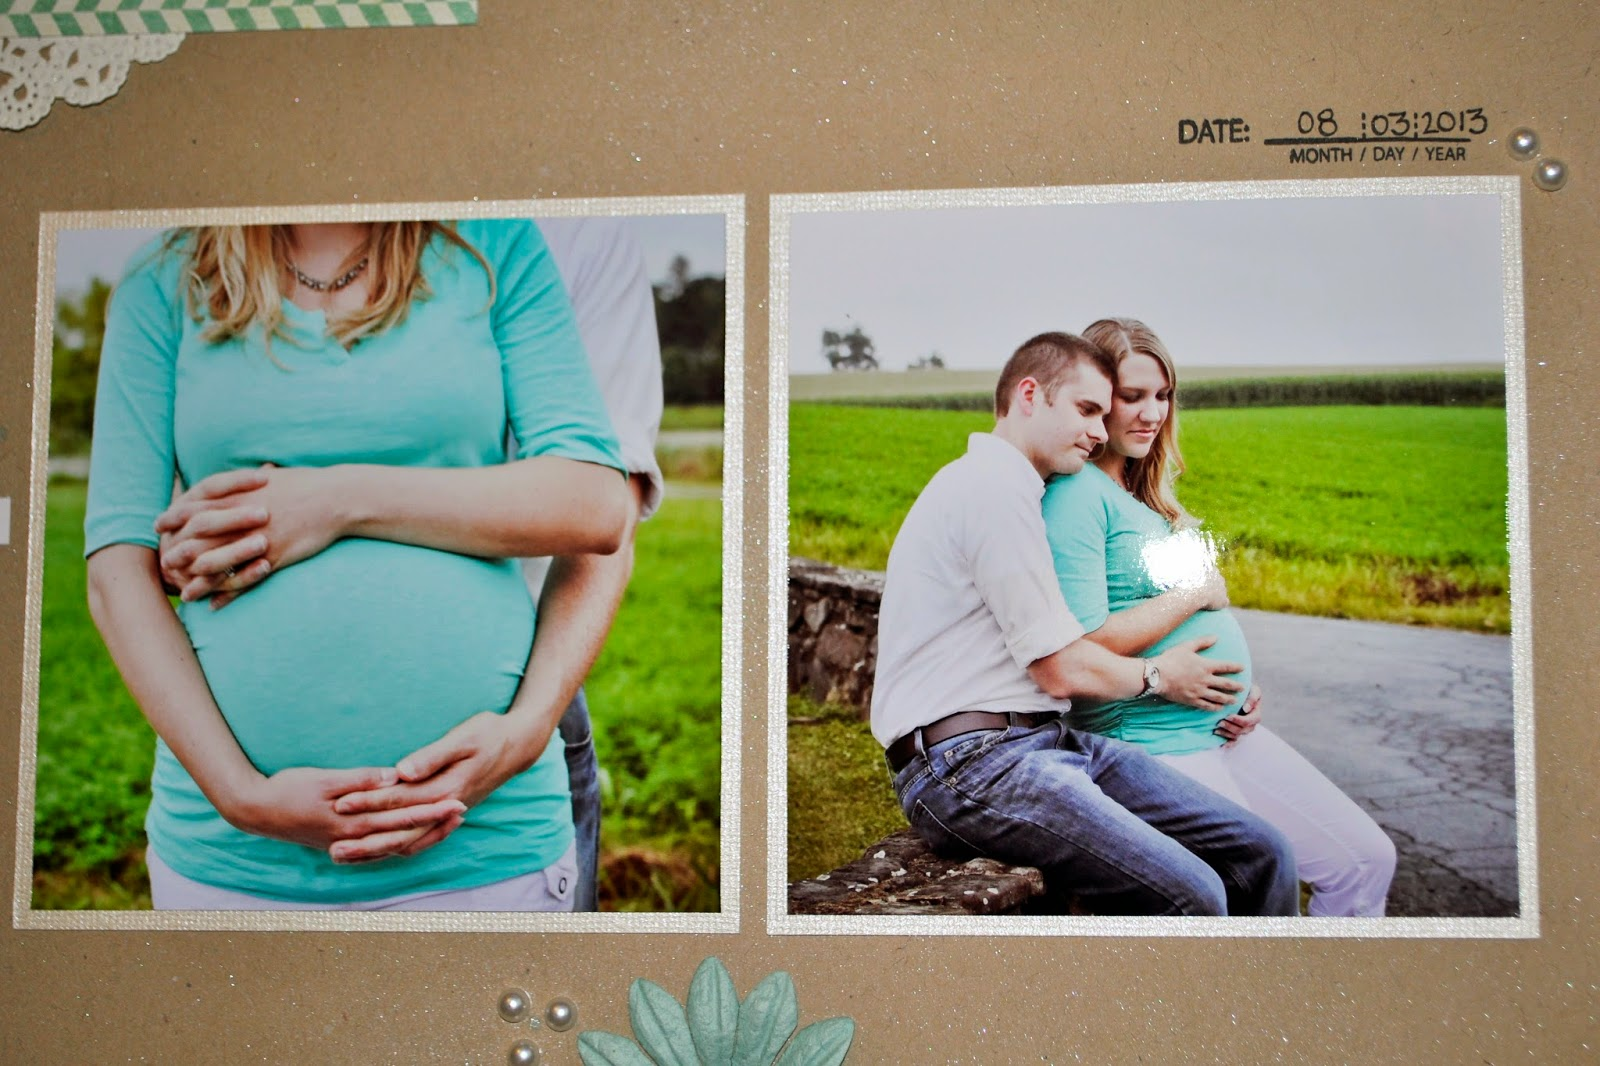 12x12 scrapbook page pregnancy maternity photos ultrasound 3D 2D pink teal blue birds sweet baby girl boy machine stitching sew sewing ribbon ivory white gold hears tag light pink note to baby weeks week weekly growth kraft brown butterfly anticipation doily doilies